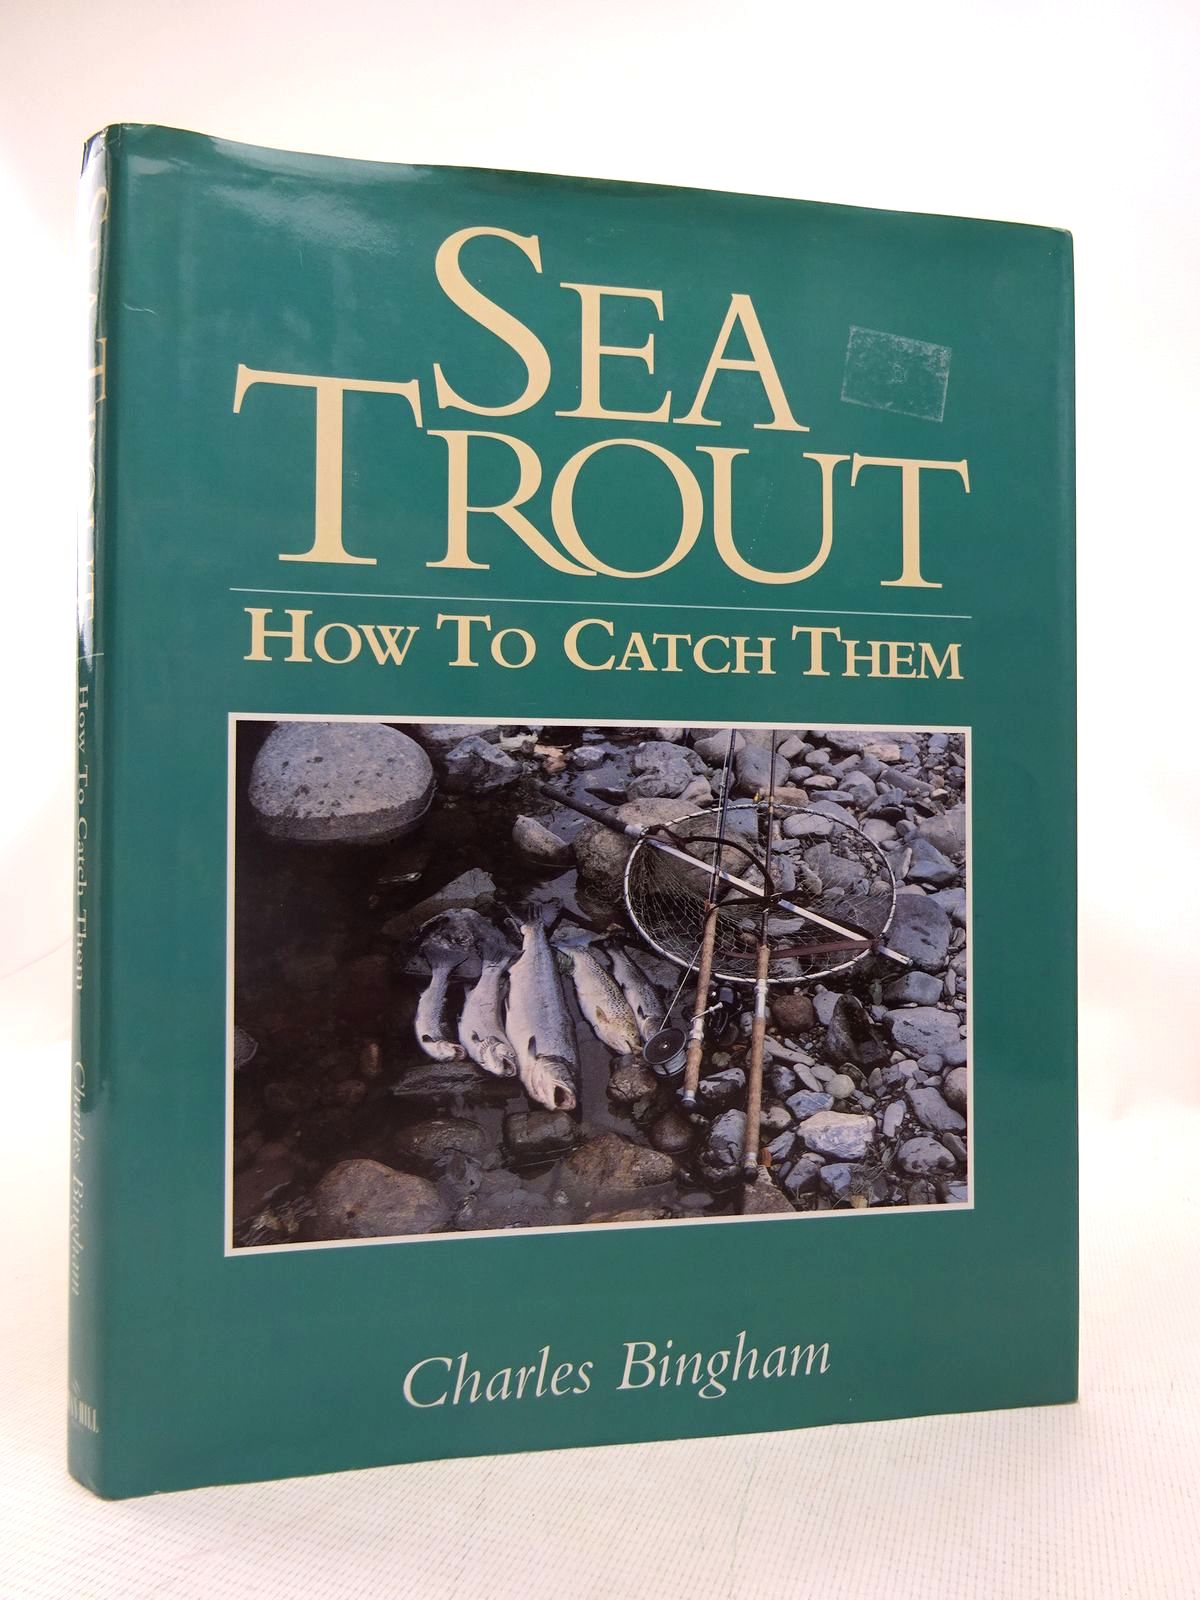 Photo of SEA TROUT HOW TO CATCH THEM written by Bingham, Charles published by Swan Hill Press (STOCK CODE: 1816677)  for sale by Stella & Rose's Books